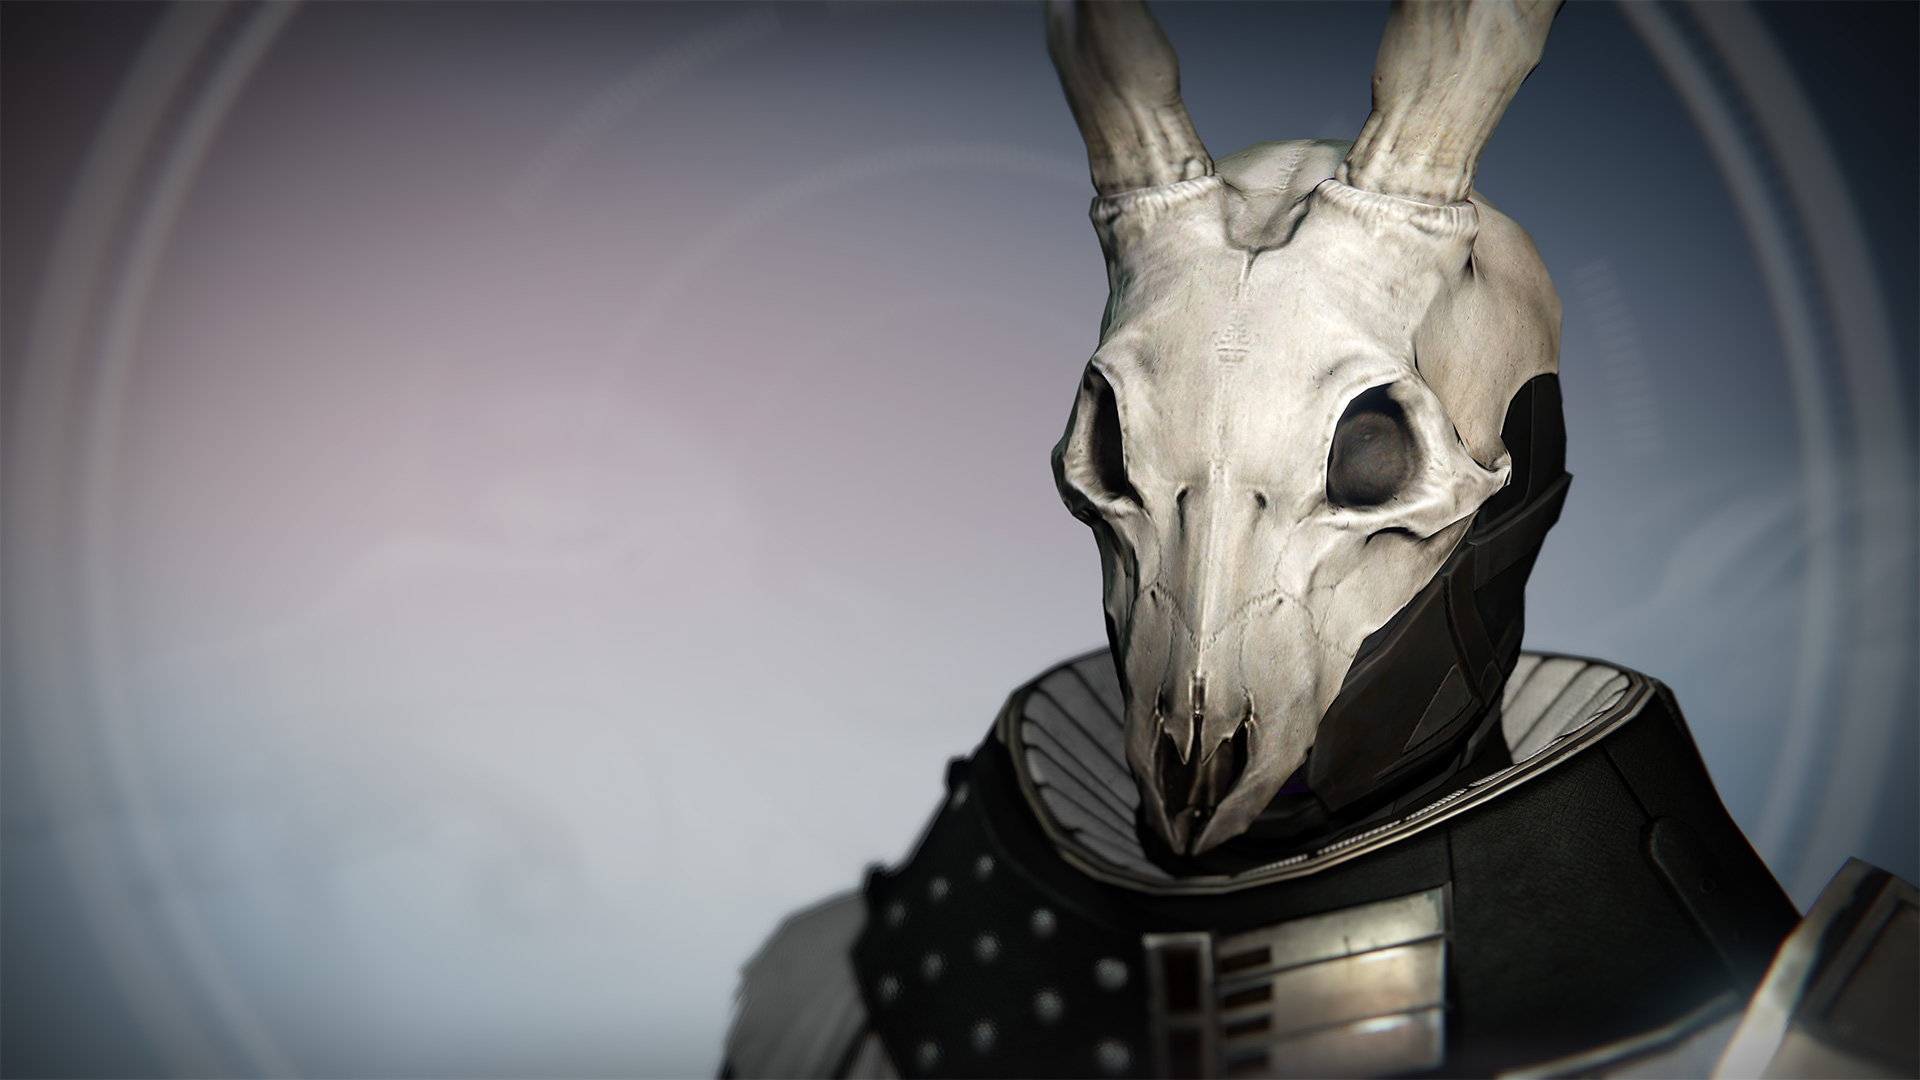 Destiny's best gear will come with hard work rather than luck in The Taken King